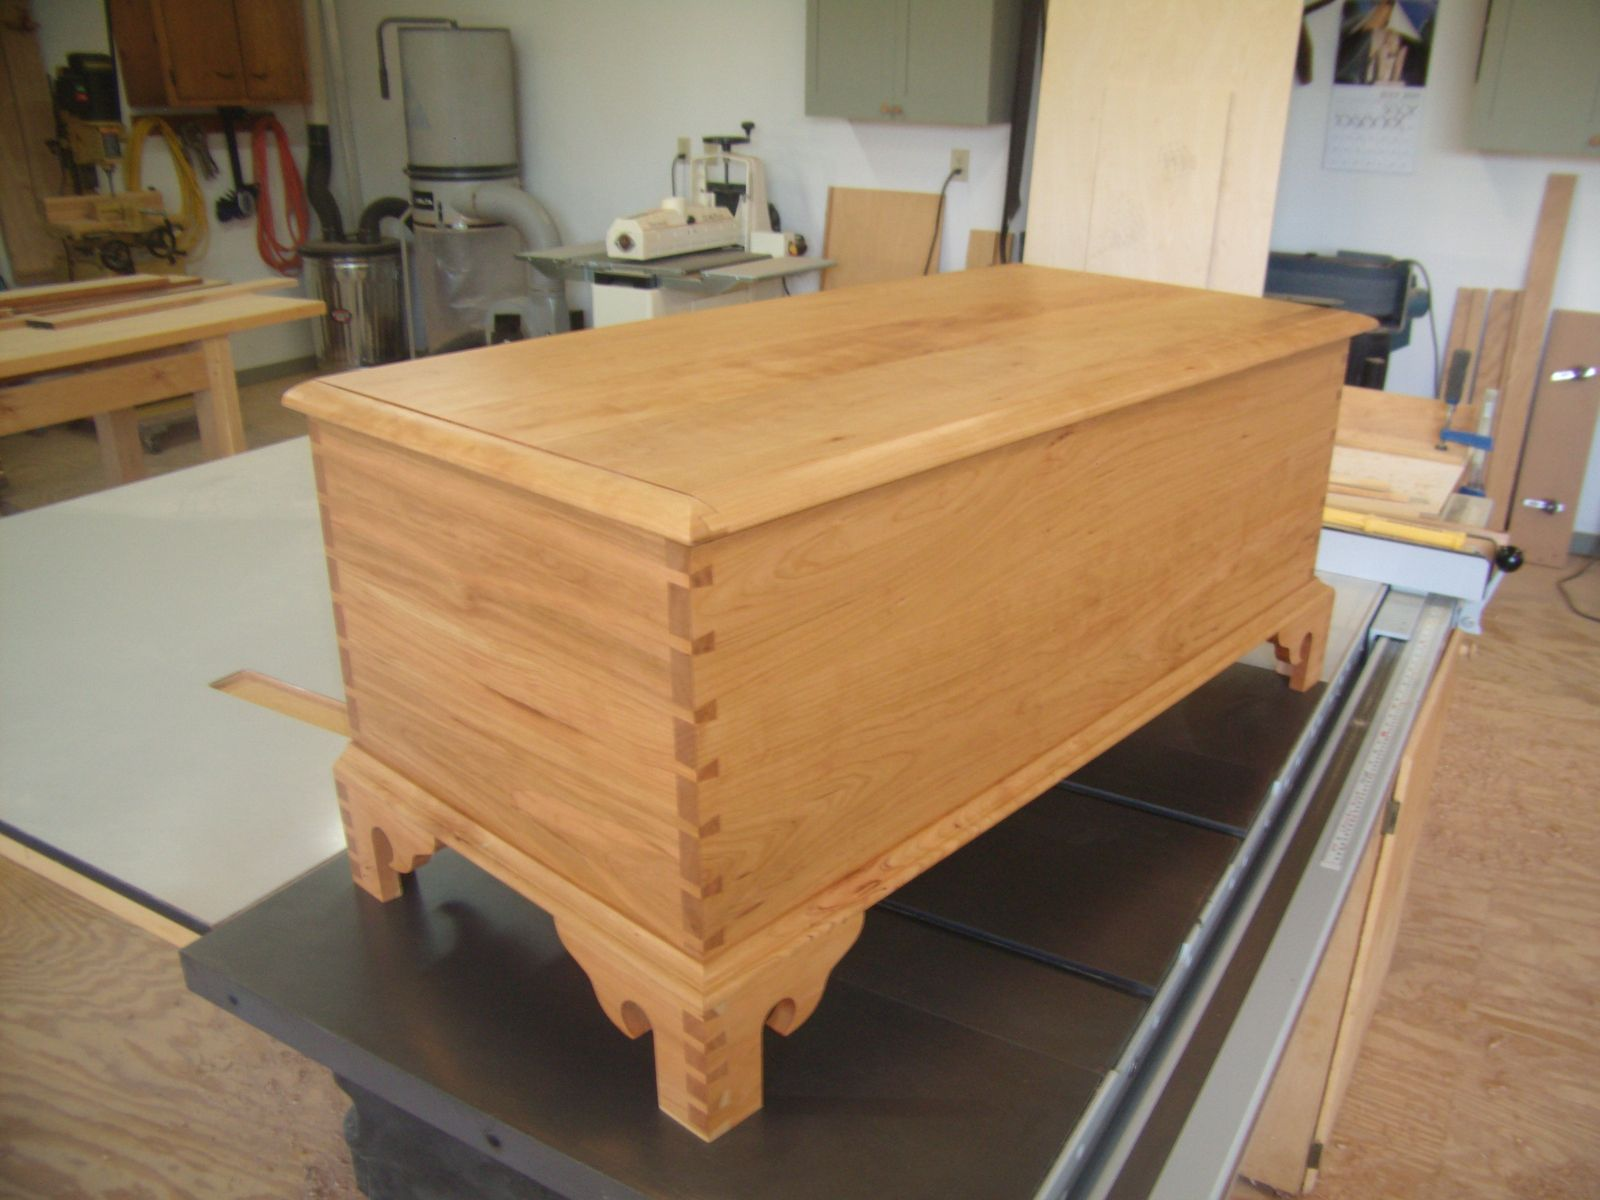 Custom made chippendale blanket chest by byrd woodworking for Blanket chest designs